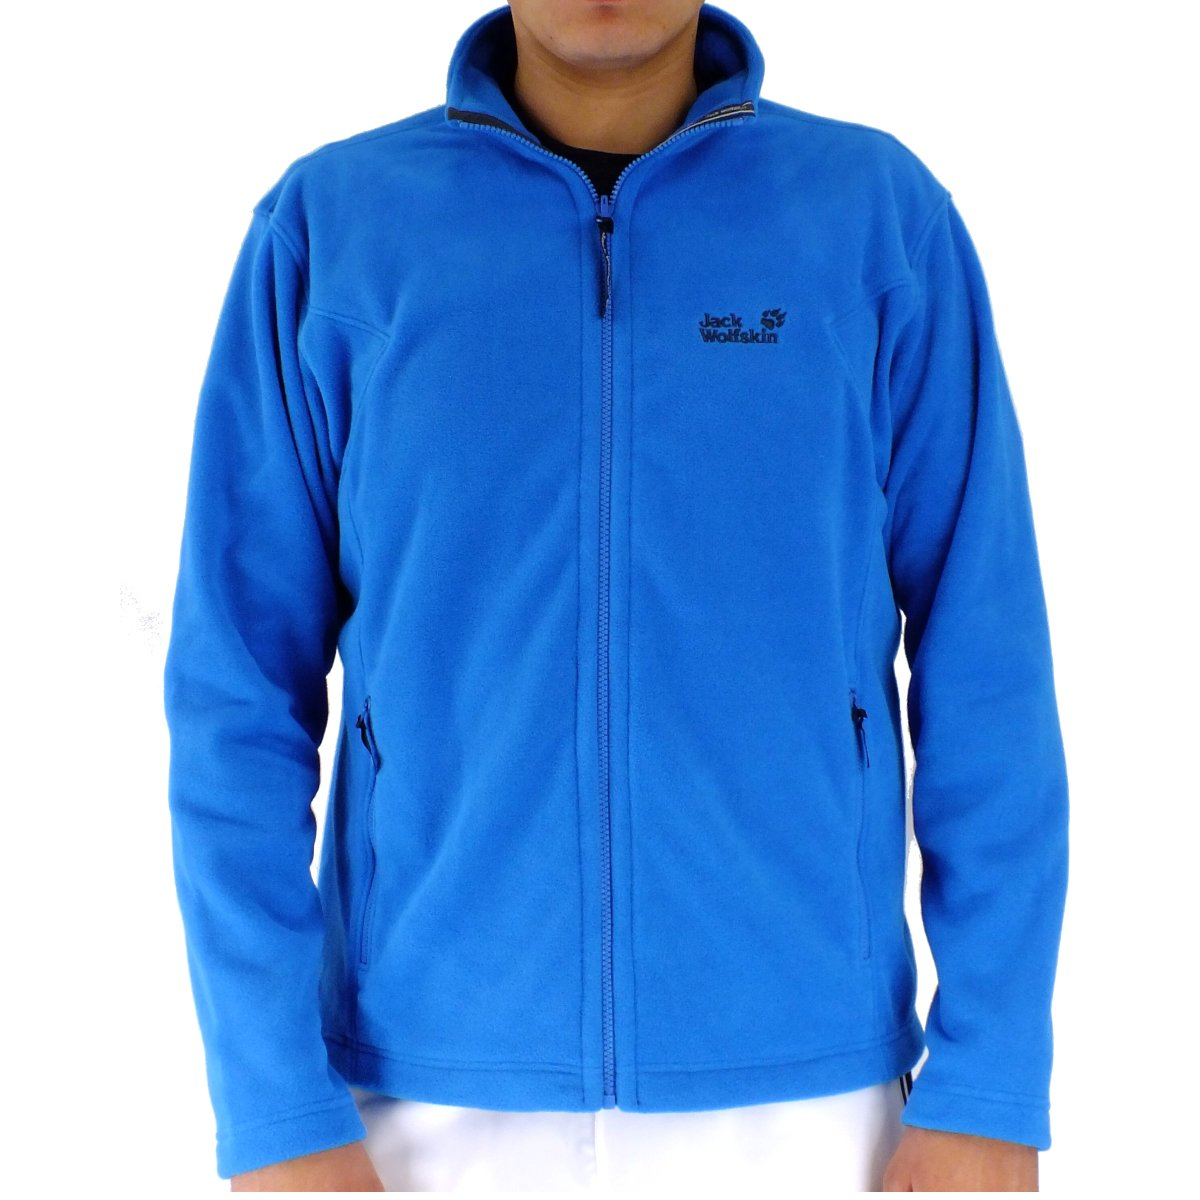 jack wolfskin moonrise jacket blue mens fleece jacket blue. Black Bedroom Furniture Sets. Home Design Ideas